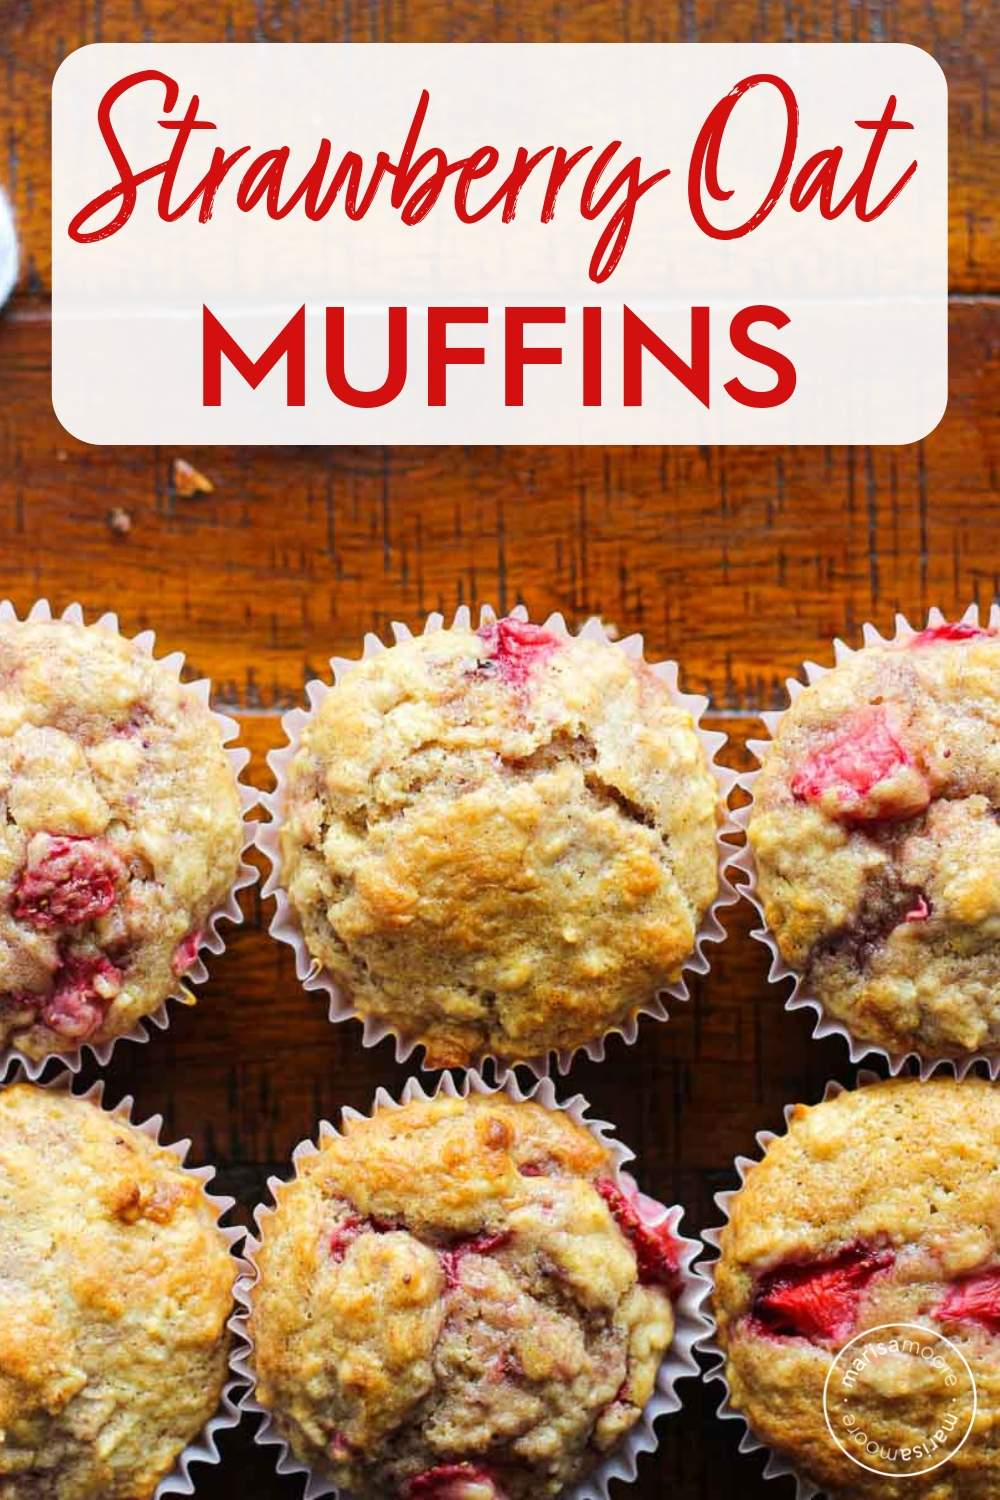 Strawberry muffins on a brown table